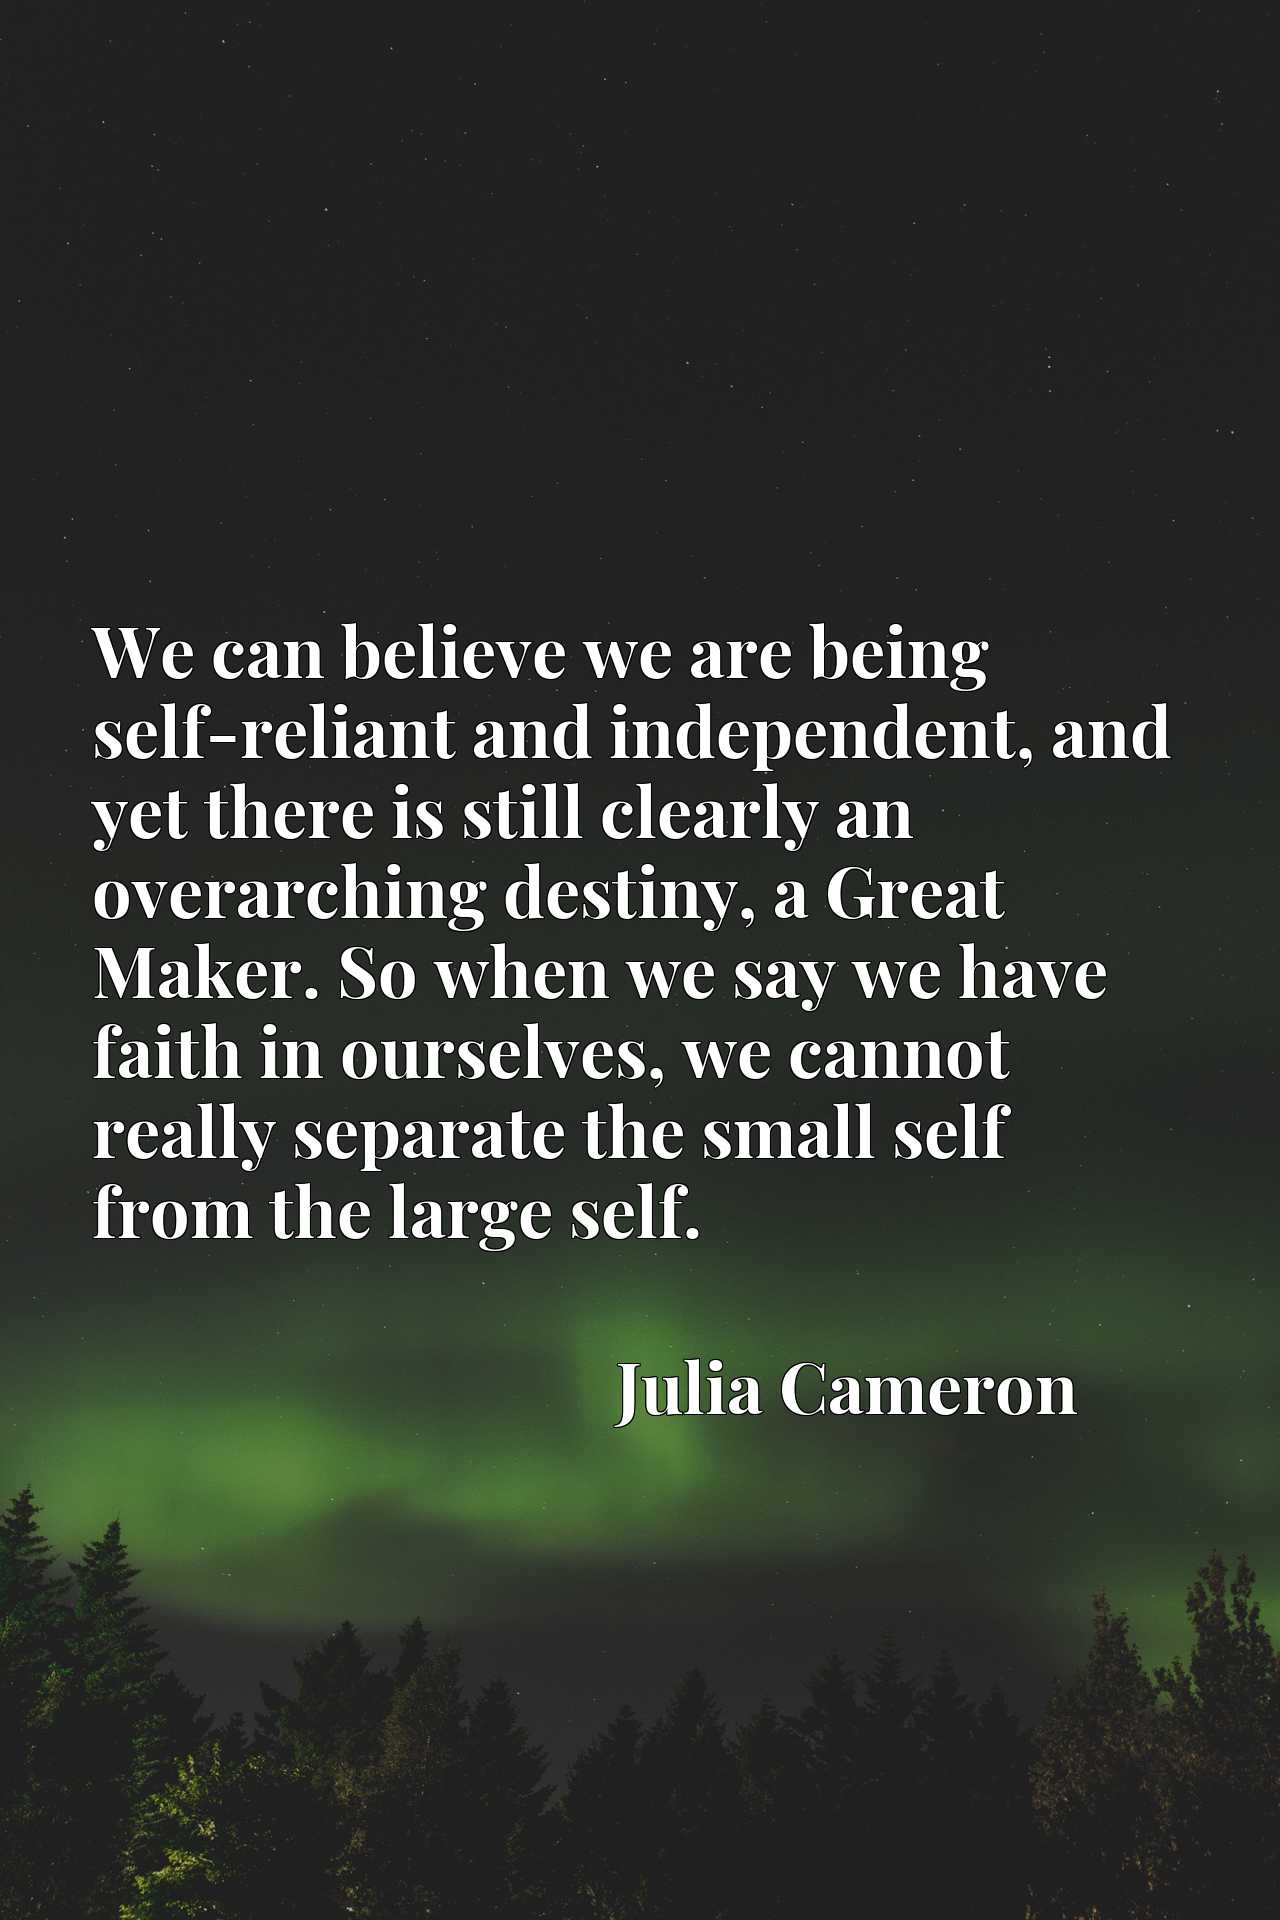 We can believe we are being self-reliant and independent, and yet there is still clearly an overarching destiny, a Great Maker. So when we say we have faith in ourselves, we cannot really separate the small self from the large self.